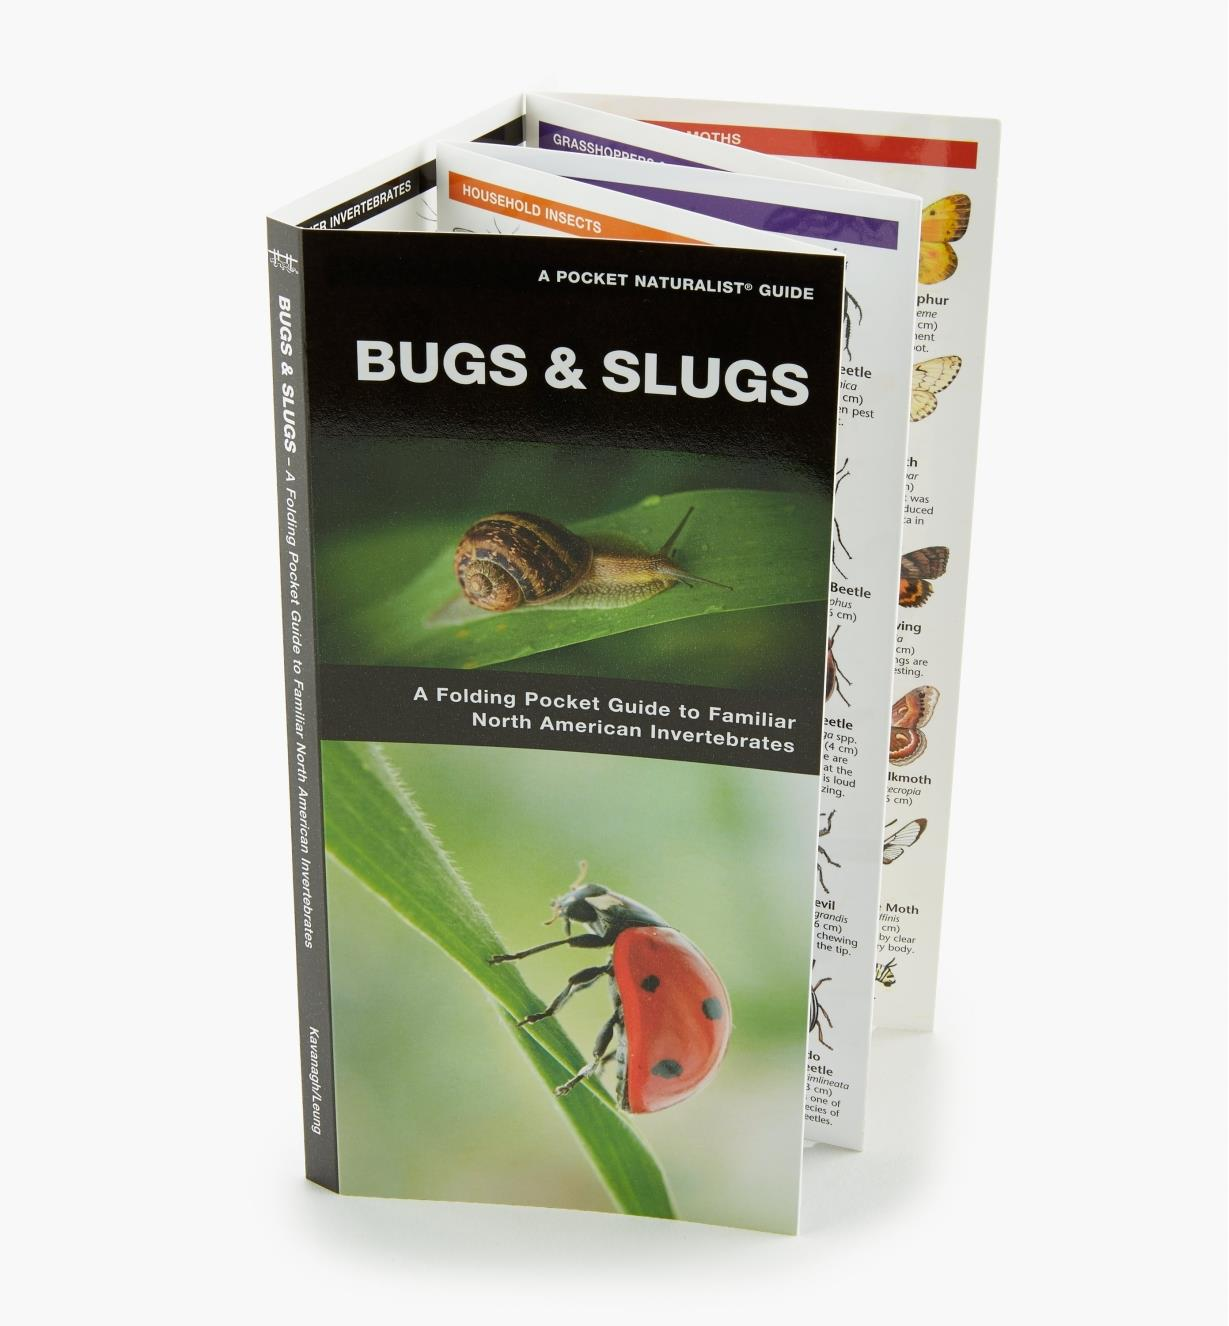 LA258 - Bugs & Slugs Pocket Guide